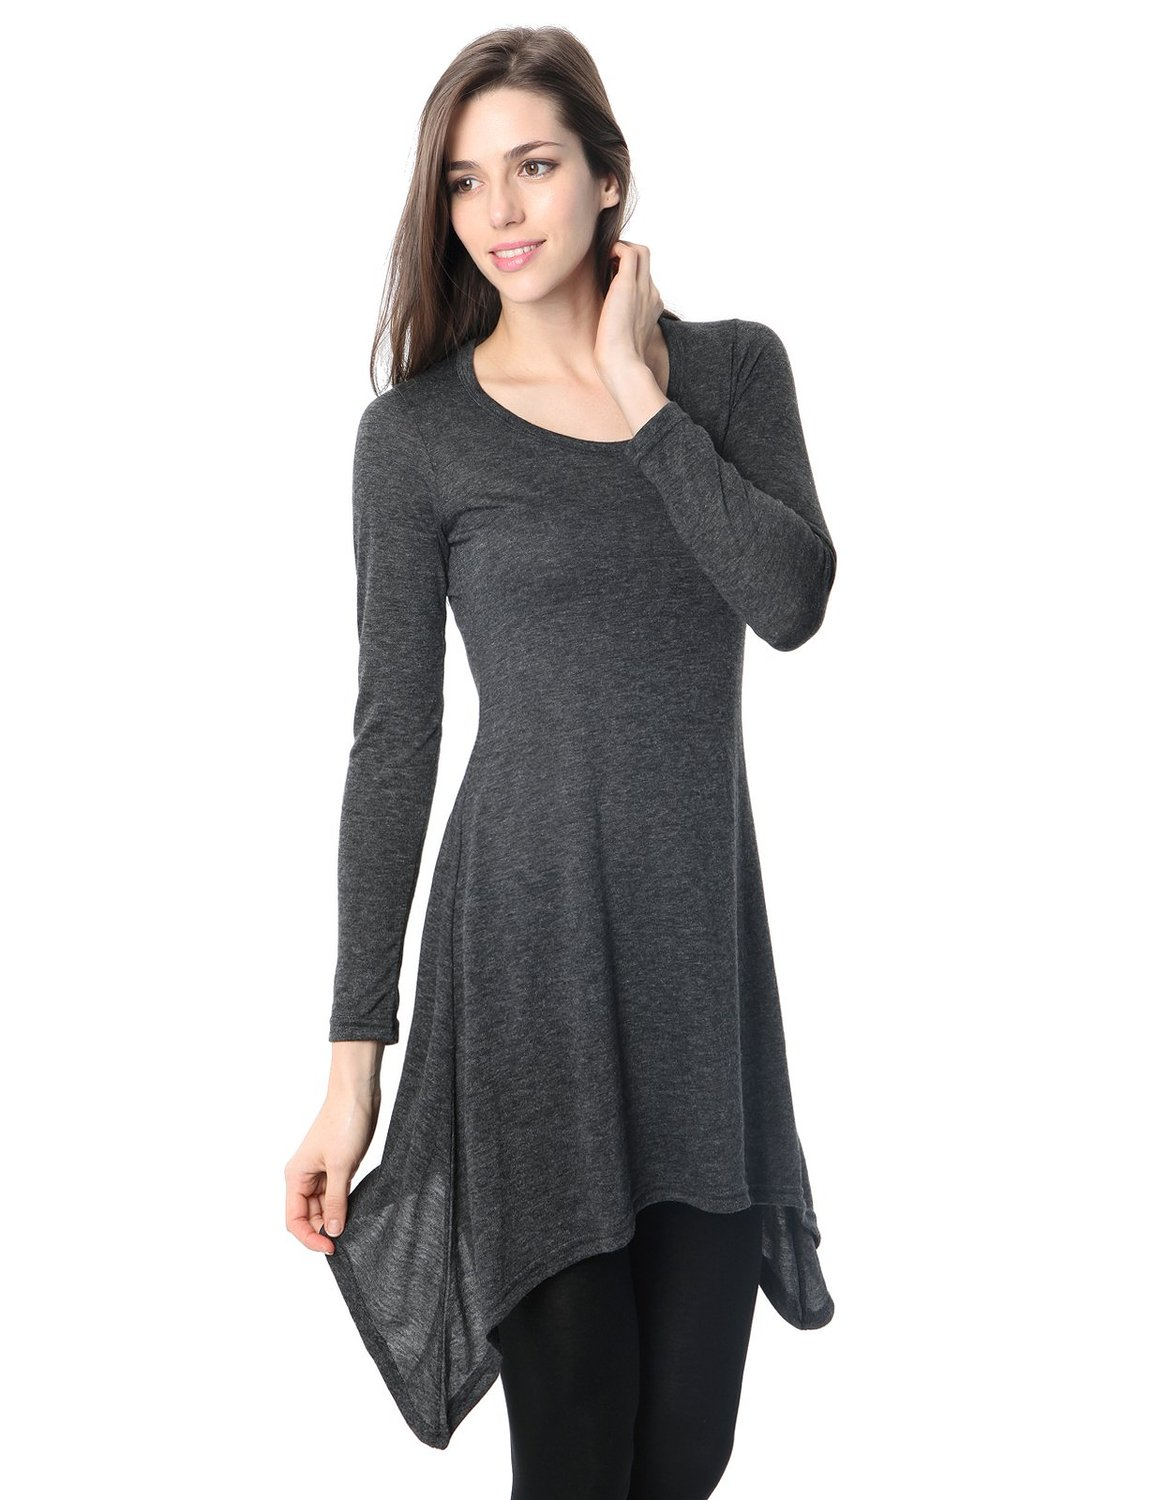 Find the most stylish plus size tunic tops at Simply Be. From plus size tunic dresses to tunics to wear with leggings, you're sure to find a look you love.